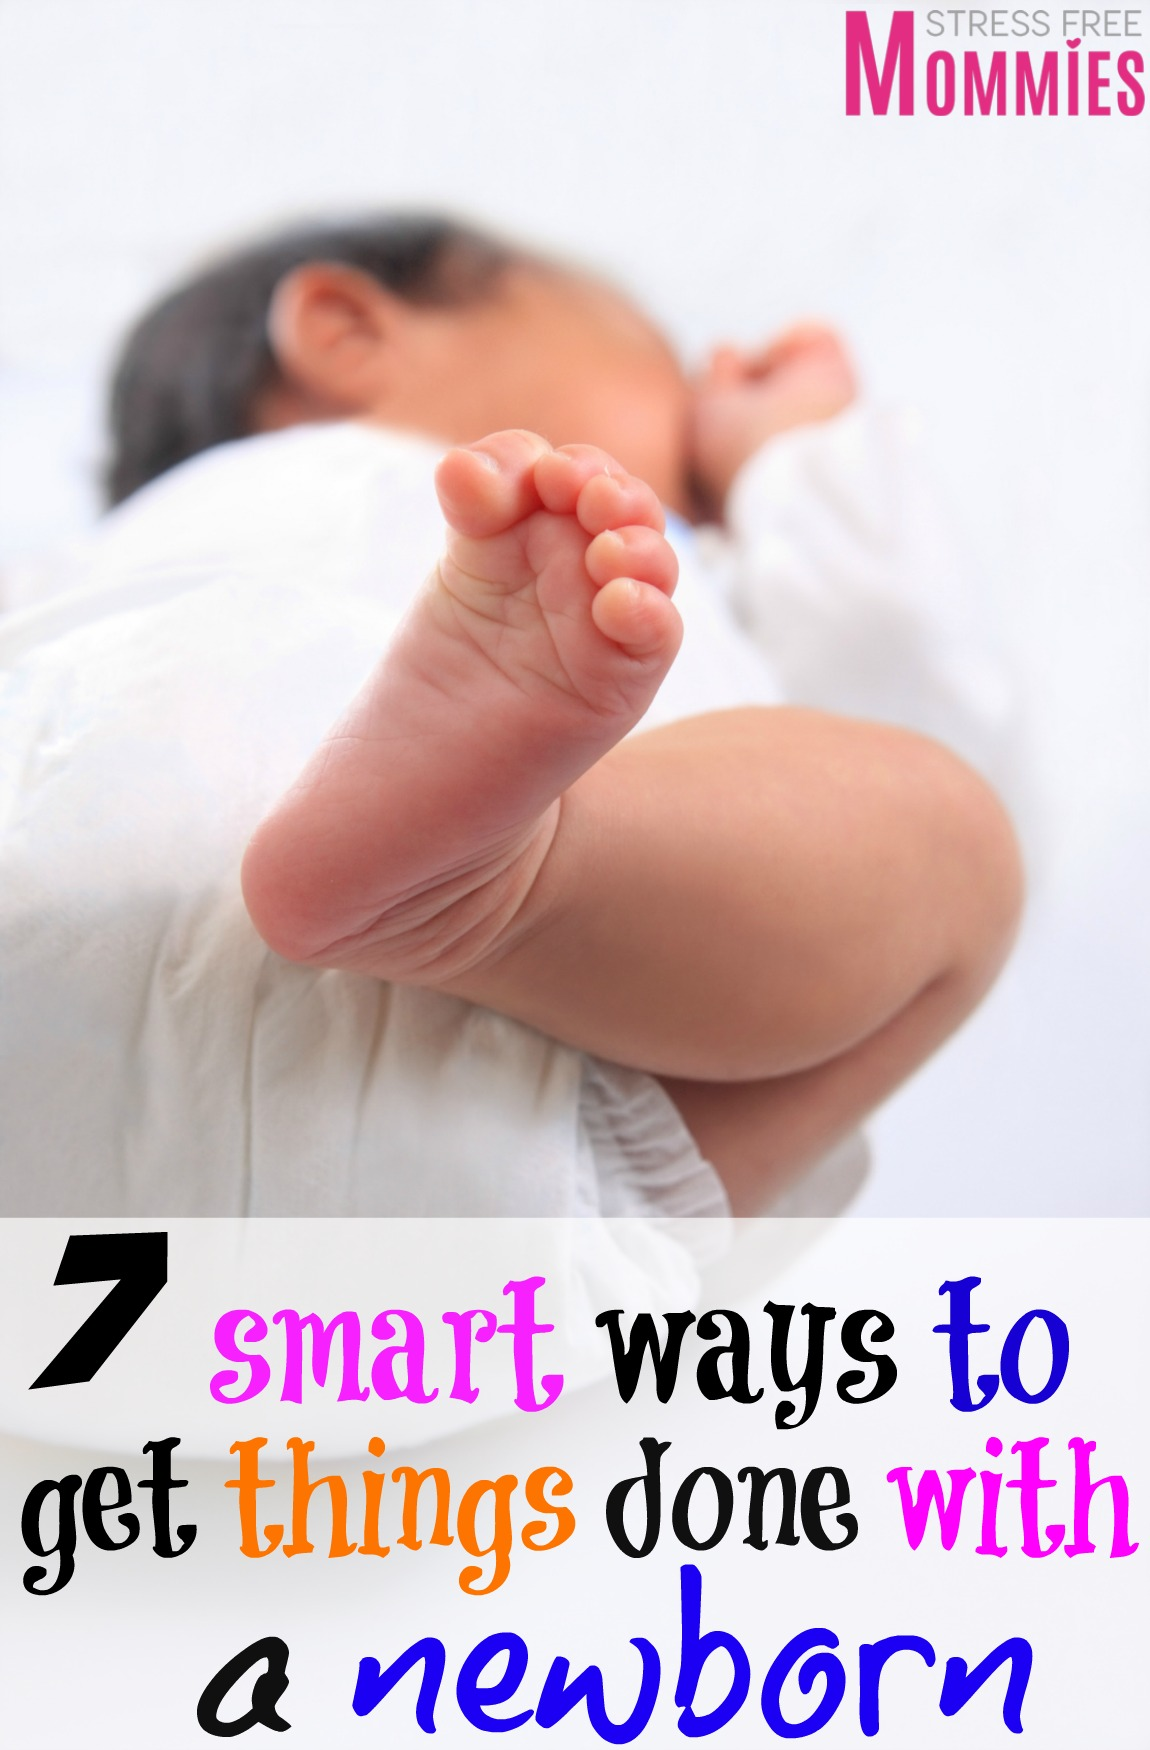 7 smart ways to get things done with a newborn- Easy solutions to get work done around the house done with a newborn. Cook, clean and even take a shower! #newborn #firsttimemom #baby